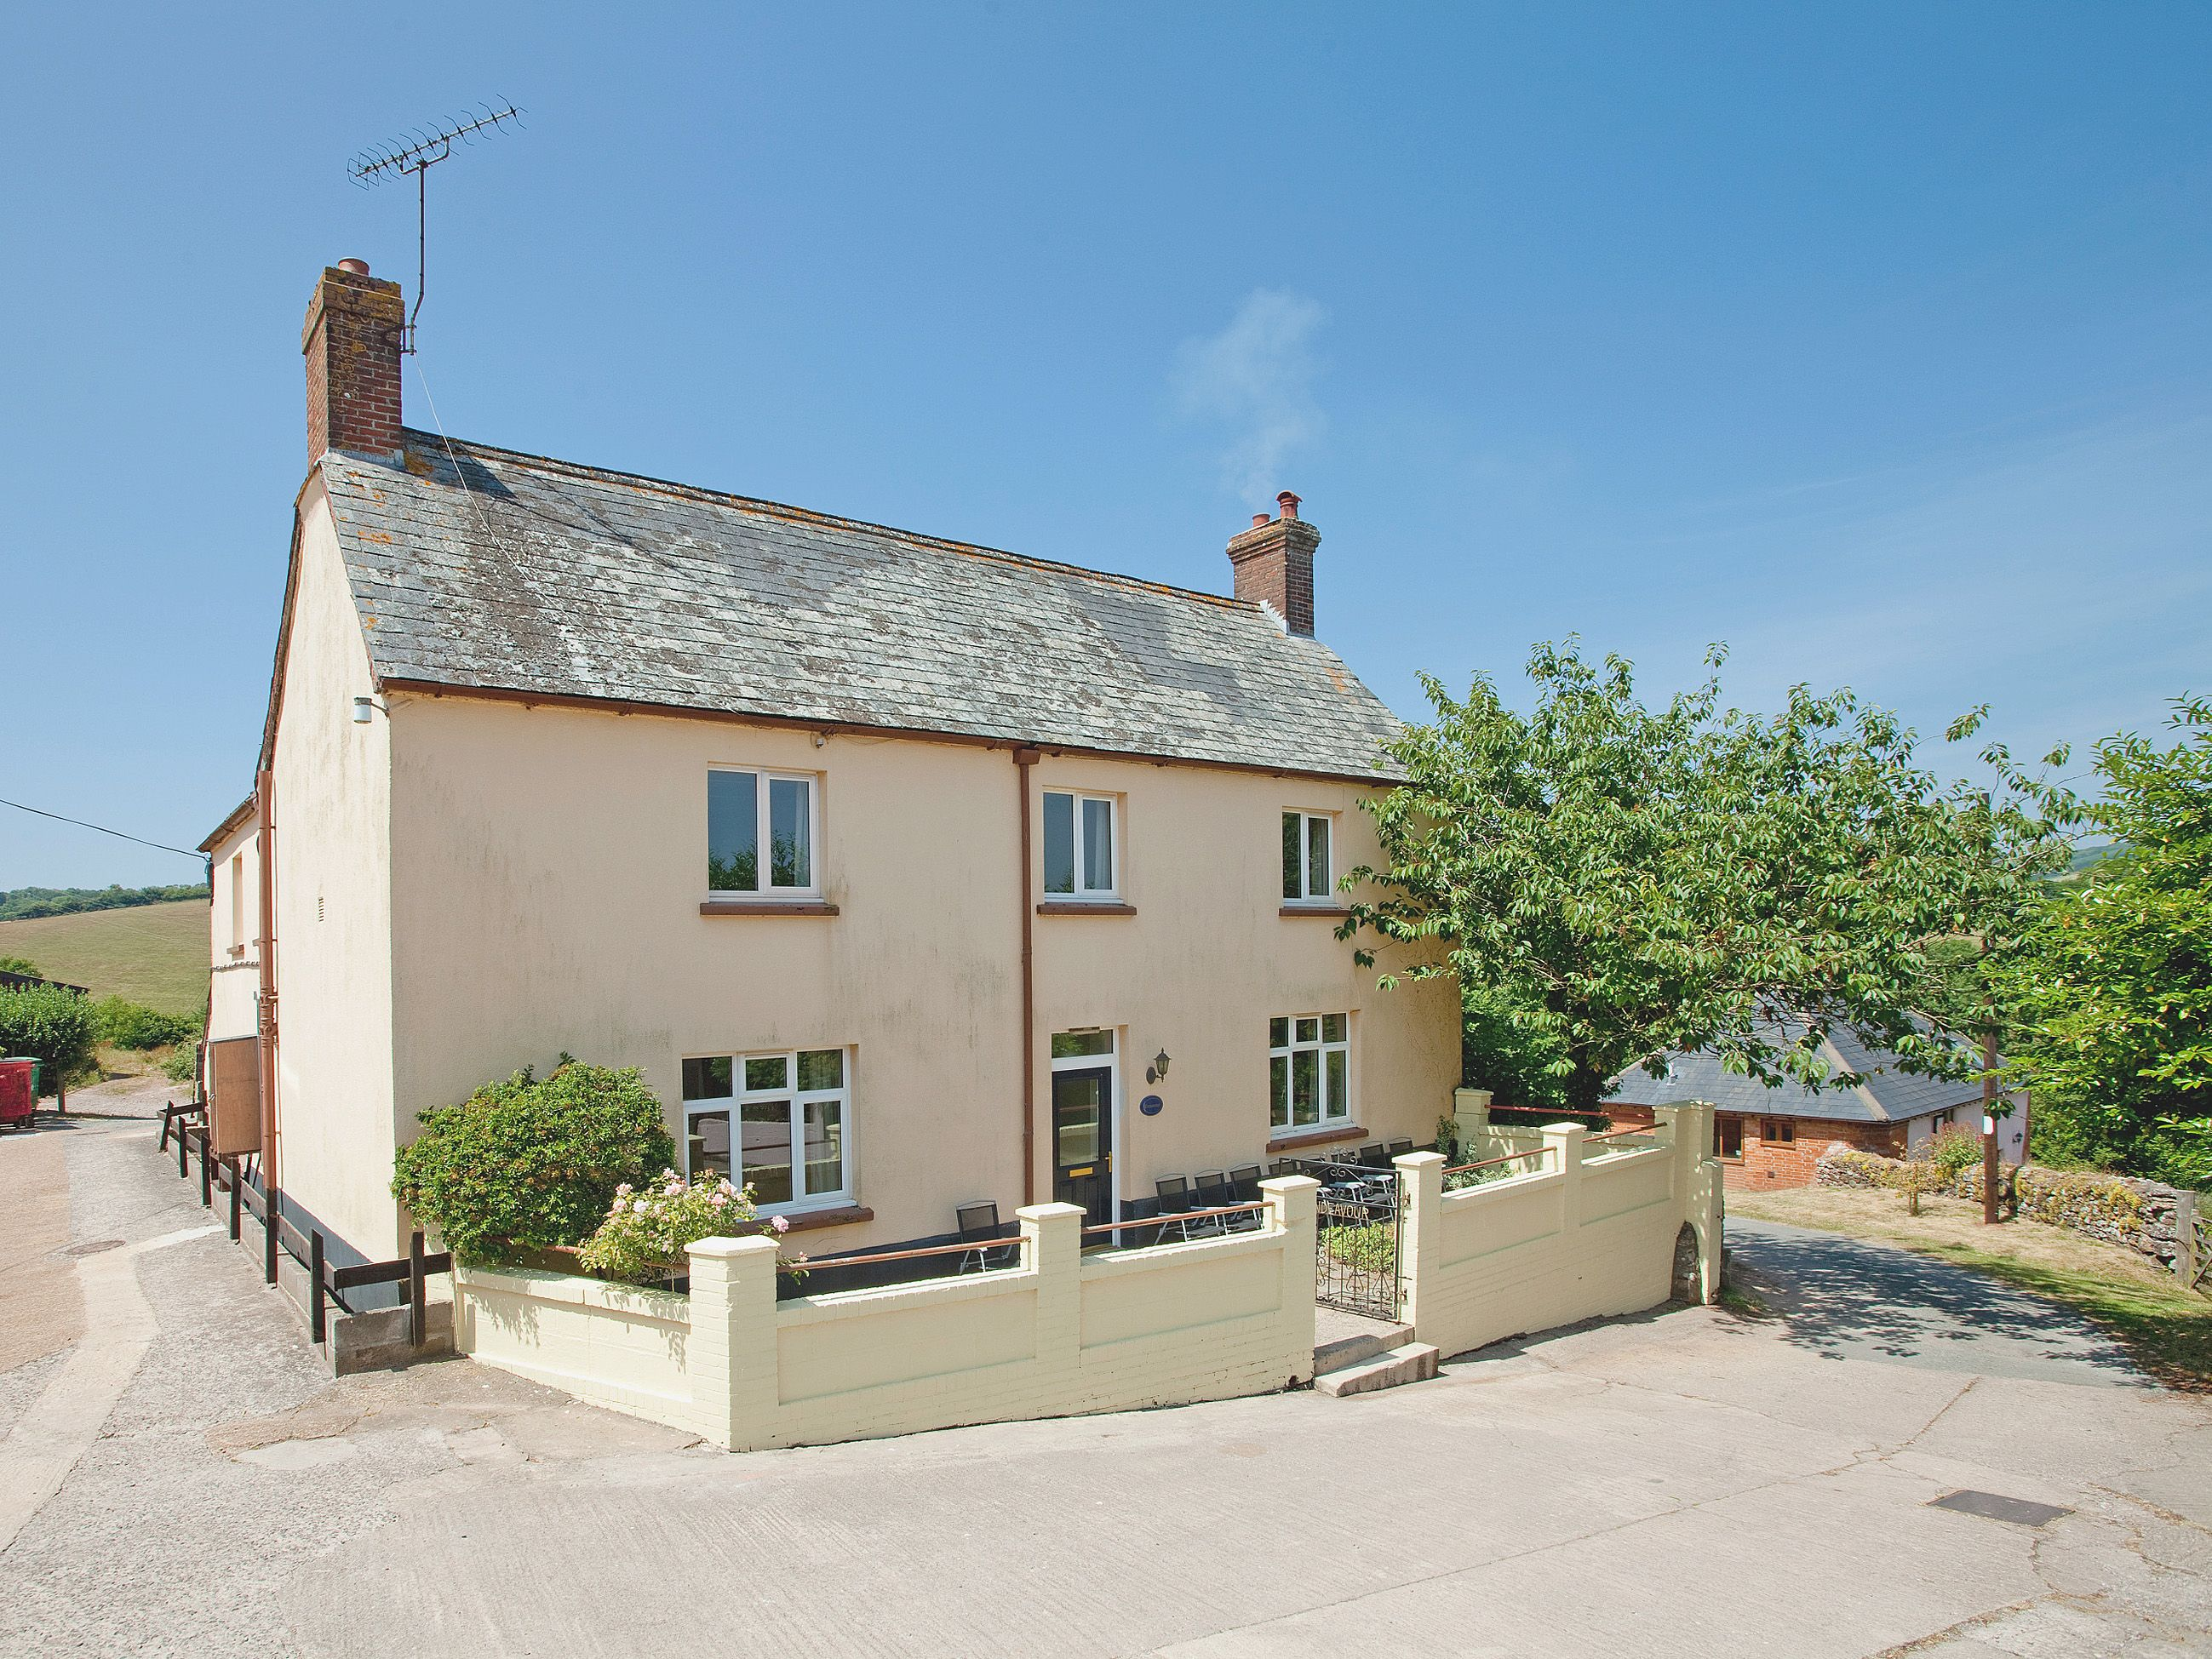 This property can cater for a party size of 15 with 7 bedrooms and 6 bathrooms.